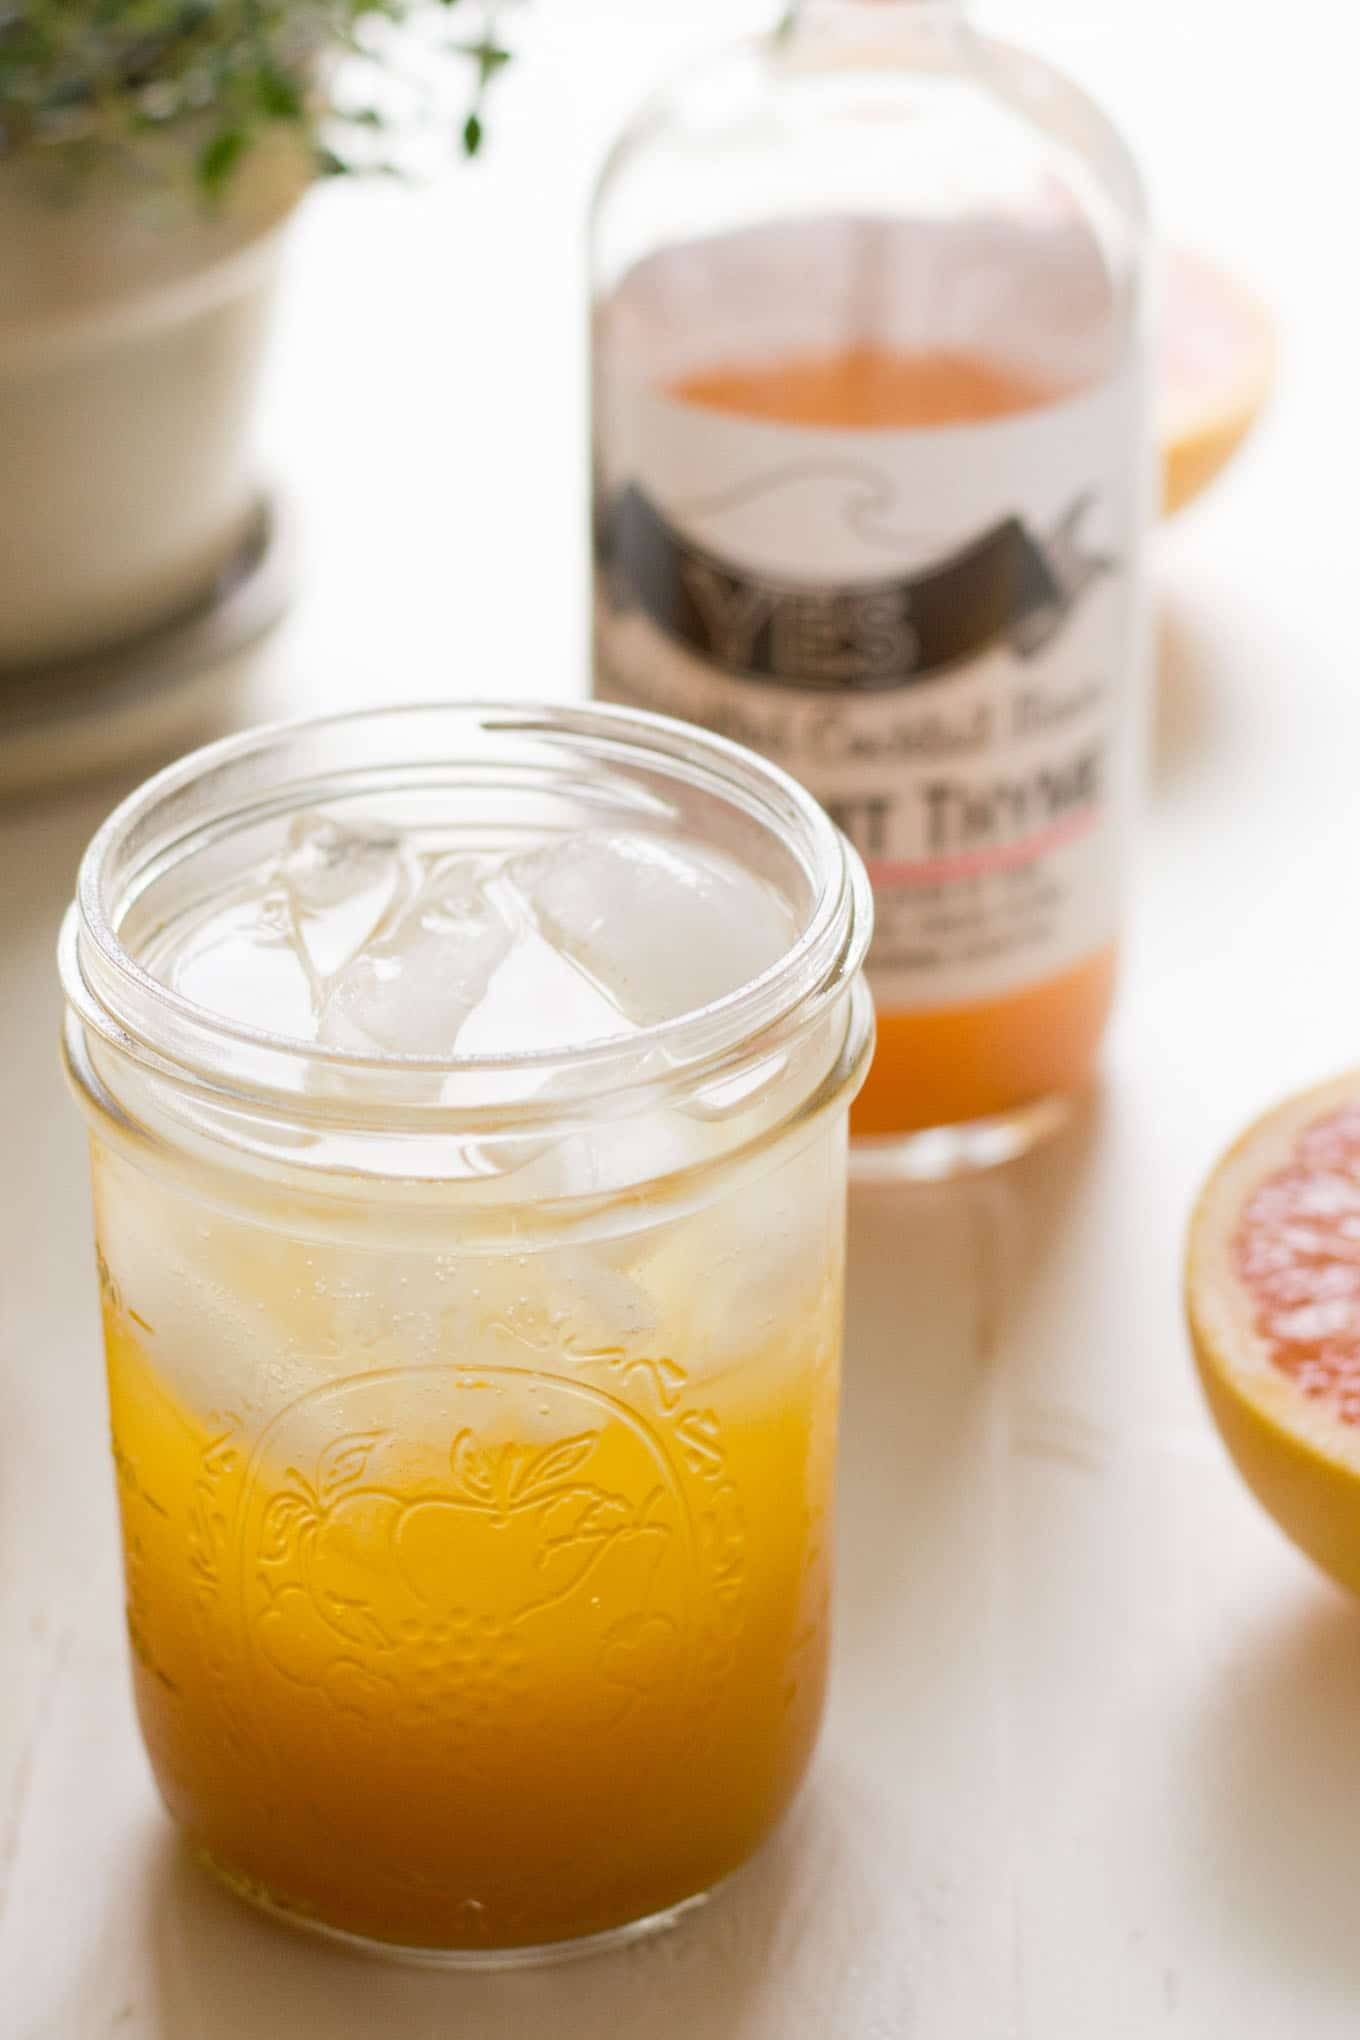 This grapefruit thyme turmeric sparkler is a refreshing way to get your antioxidants from turmeric while beating the heat! | http://eatwithinyourmeans.com